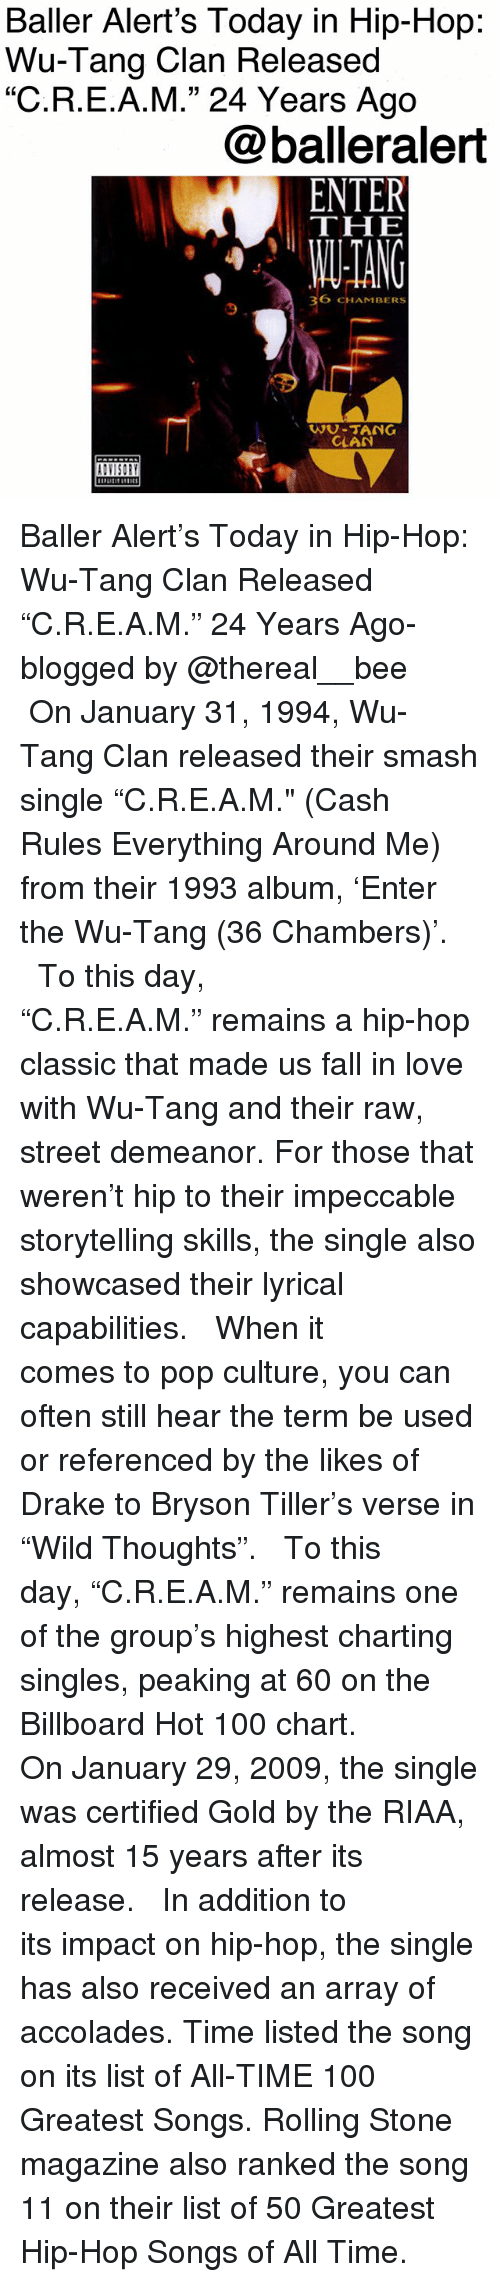 "Rolling Stone: Baller Alert's Today in Hip-Hop:  Wu-Tang Clan Released  ""C.R.E.A.M."" 24 Years Ago  @balleralert  THE  ANG  36 CHAMBERS  9  WU-TANG  CLAN Baller Alert's Today in Hip-Hop: Wu-Tang Clan Released ""C.R.E.A.M."" 24 Years Ago-blogged by @thereal__bee ⠀⠀⠀⠀⠀⠀⠀ ⠀⠀⠀⠀ On January 31, 1994, Wu-Tang Clan released their smash single ""C.R.E.A.M."" (Cash Rules Everything Around Me) from their 1993 album, 'Enter the Wu-Tang (36 Chambers)'. ⠀⠀⠀⠀⠀⠀⠀ ⠀⠀⠀⠀ To this day, ""C.R.E.A.M."" remains a hip-hop classic that made us fall in love with Wu-Tang and their raw, street demeanor. For those that weren't hip to their impeccable storytelling skills, the single also showcased their lyrical capabilities. ⠀⠀⠀⠀⠀⠀⠀ ⠀⠀⠀⠀ When it comes to pop culture, you can often still hear the term be used or referenced by the likes of Drake to Bryson Tiller's verse in ""Wild Thoughts"". ⠀⠀⠀⠀⠀⠀⠀ ⠀⠀⠀⠀ To this day, ""C.R.E.A.M."" remains one of the group's highest charting singles, peaking at 60 on the Billboard Hot 100 chart. ⠀⠀⠀⠀⠀⠀⠀ ⠀⠀⠀⠀ On January 29, 2009, the single was certified Gold by the RIAA, almost 15 years after its release. ⠀⠀⠀⠀⠀⠀⠀ ⠀⠀⠀⠀ In addition to its impact on hip-hop, the single has also received an array of accolades. Time listed the song on its list of All-TIME 100 Greatest Songs. Rolling Stone magazine also ranked the song 11 on their list of 50 Greatest Hip-Hop Songs of All Time."